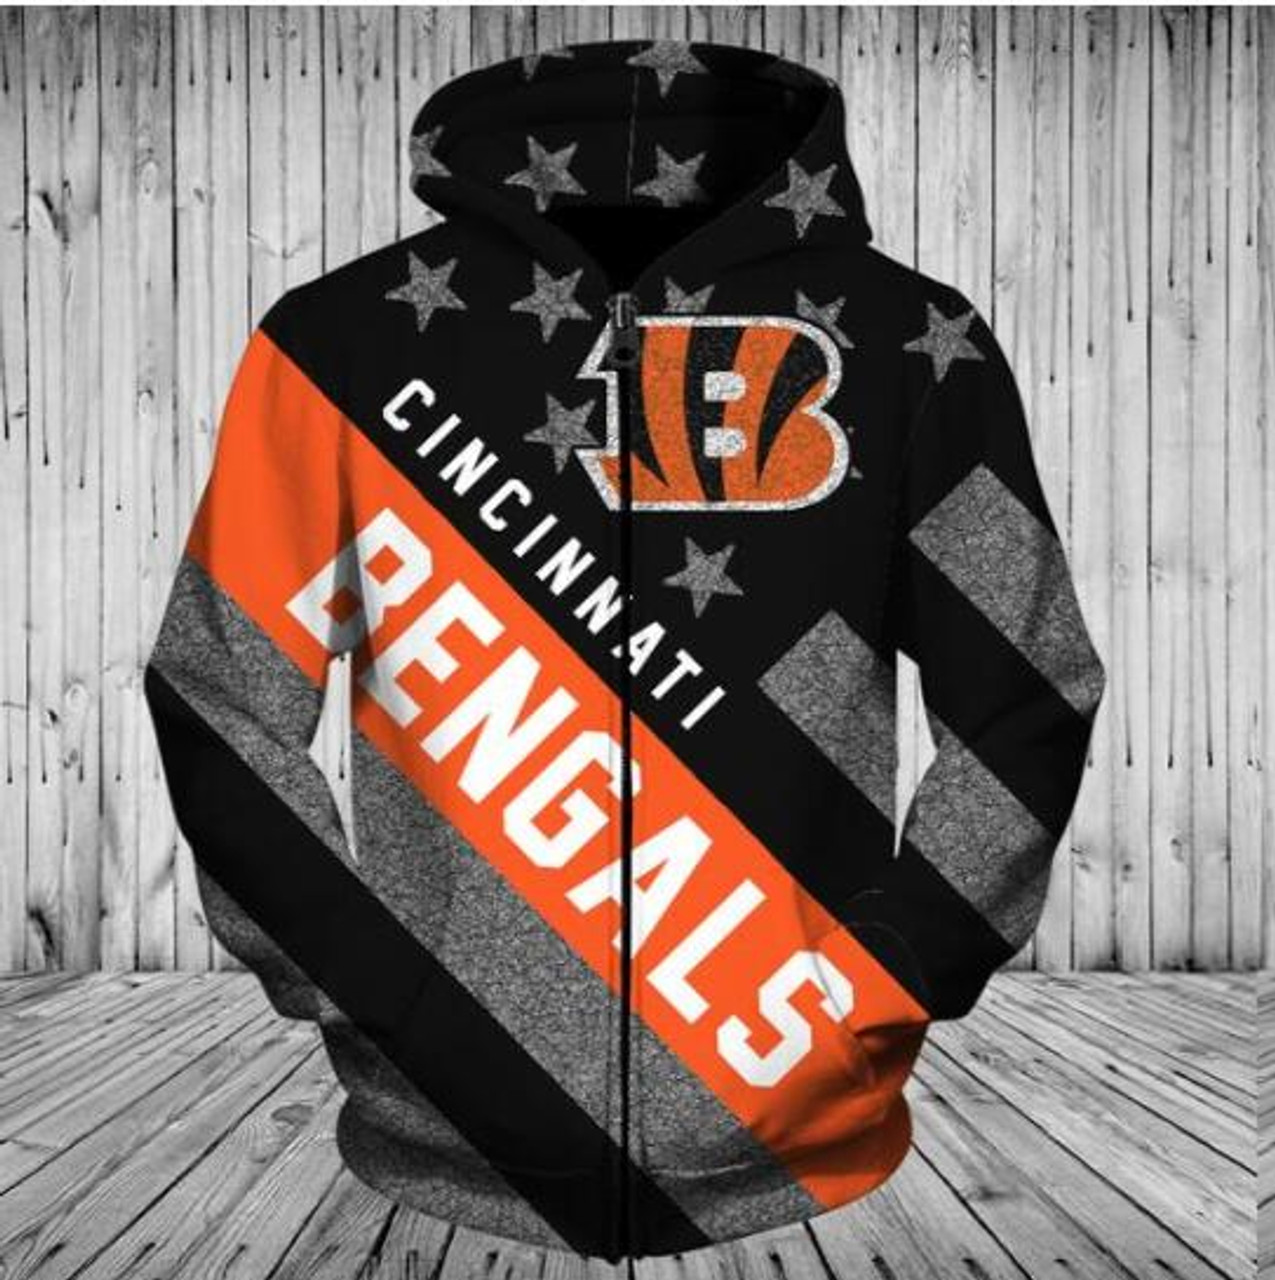 **(OFFICIALLY-LICENSED-N.F.L.CINCINNATI-BENGALS-ZIPPERED-HOODIES/ALL-OVER-3D-GRAPHIC-PRINTED-IN-BENGALS-LOGOS & OFFICIAL-BENGALS-TEAM-COLORS & PATRIOT-FLAG/WARM-PREMIUM-FRONT-ZIPPERED-DEEP-POCKETED-OFFICIAL-N.F.L.BENGALS-TEAM-HOODIES)**